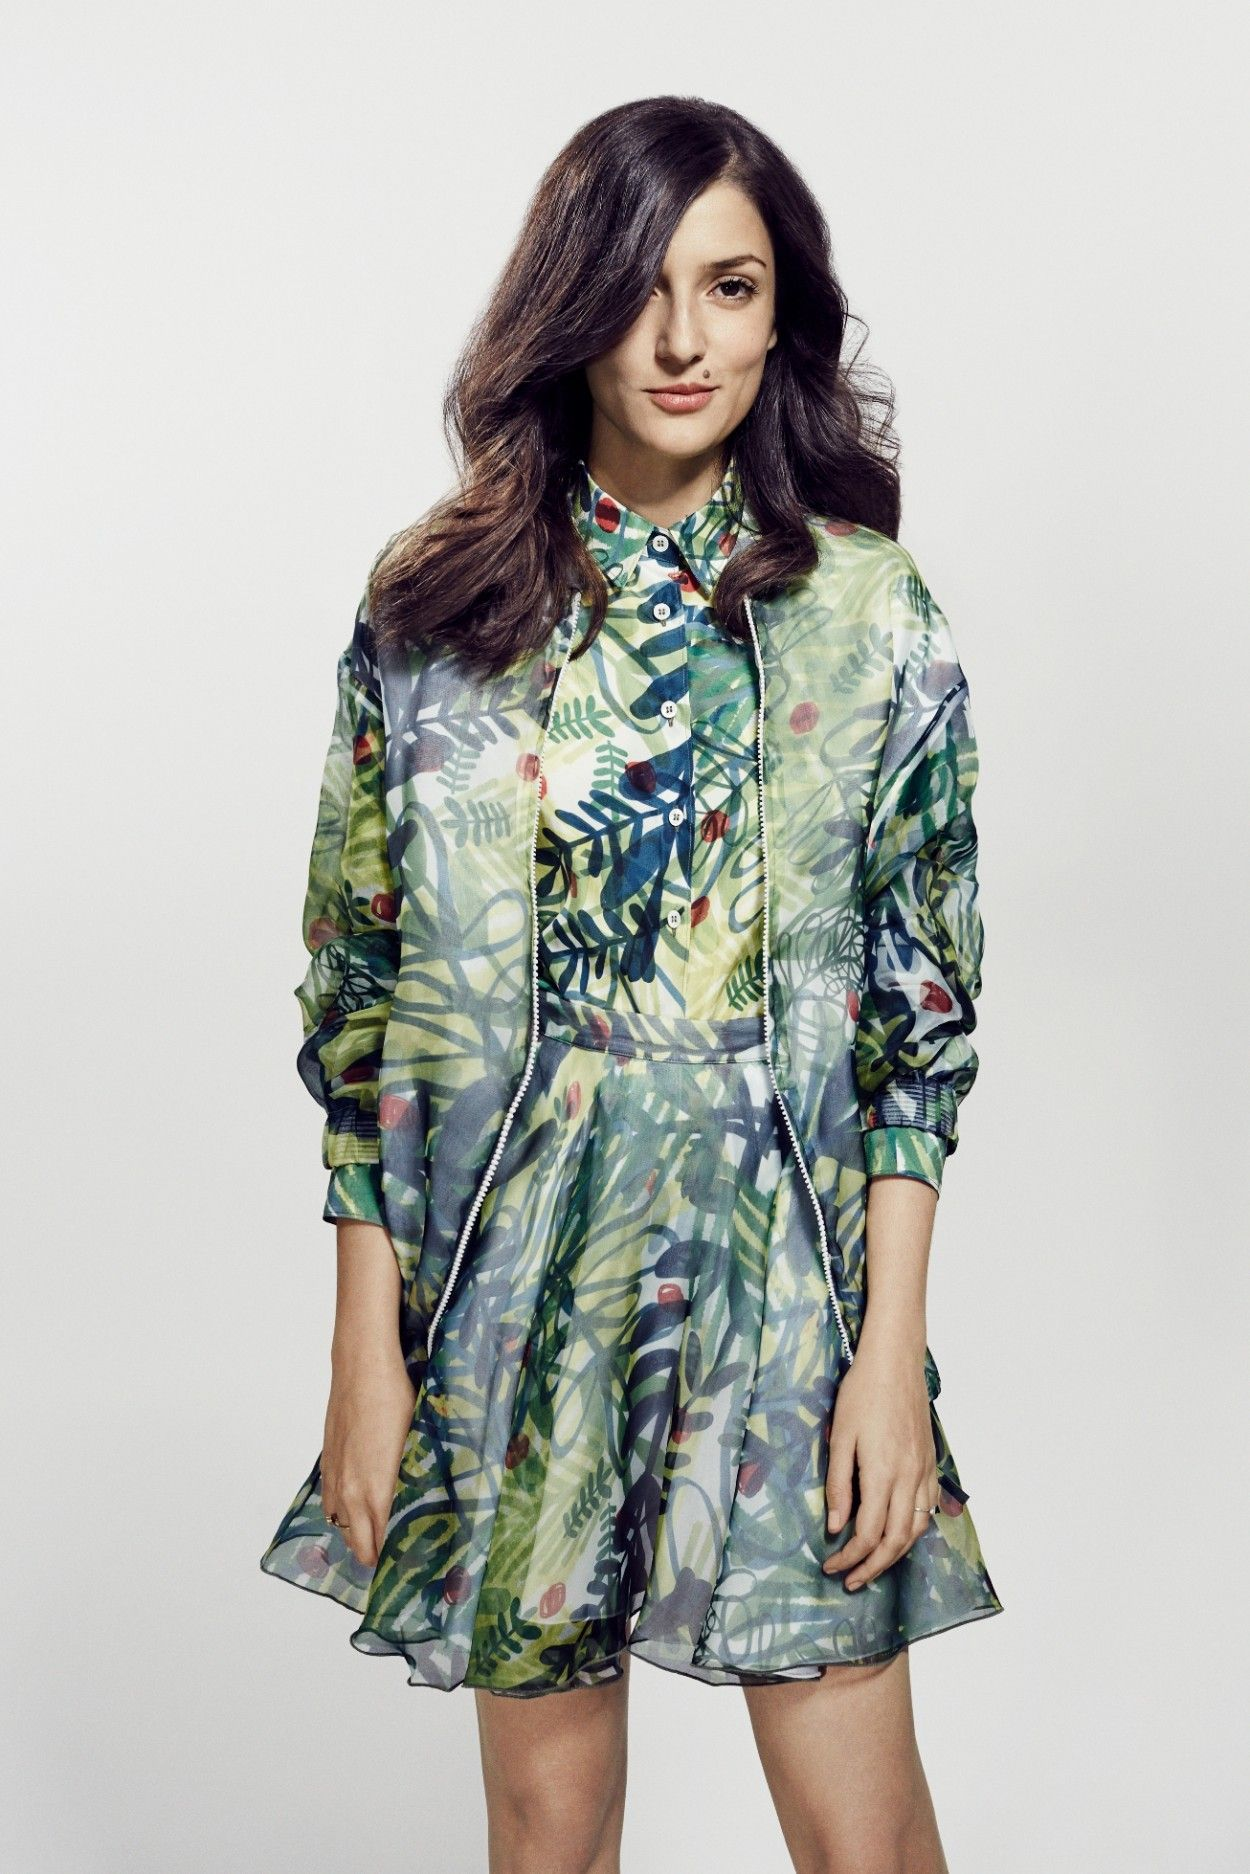 EleonoraCarisi_for_Zalando_Lookbook(10)©AxlJansen.jpg